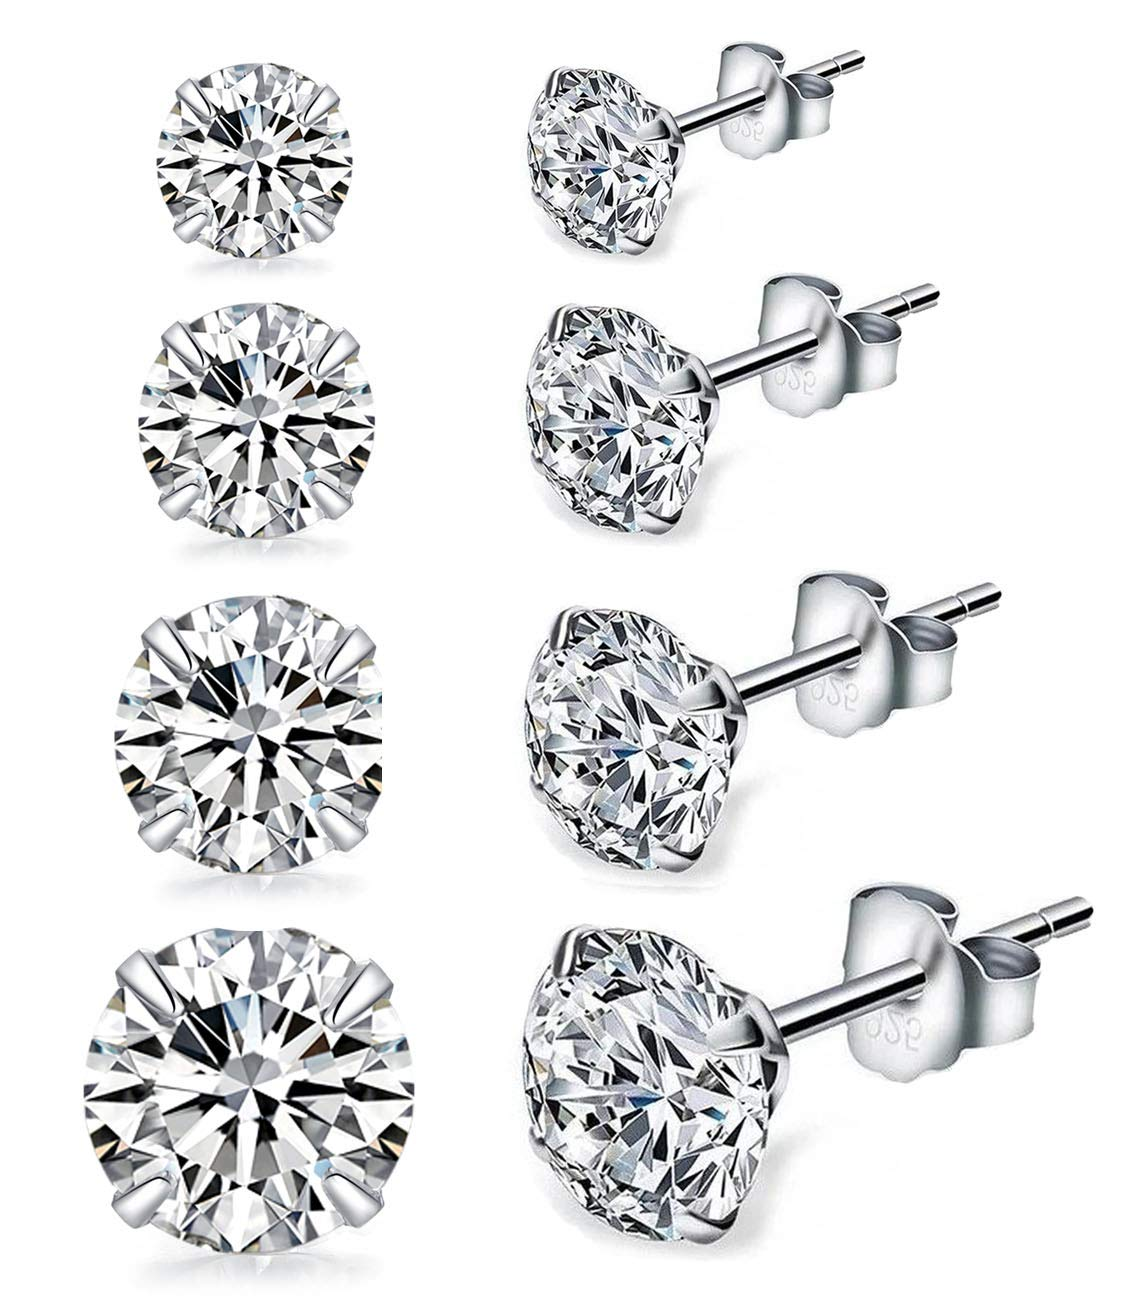 Sterling Silver Studs Earrings, 4 Pairs, Round Clear Cubic Zirconia 18K White Gold-Plated Hypoallergenic Tiny Earrings Sets for Women Girls, Fashion Earrings for Sensitive Ears priercing (3, 4, 5,6mm)